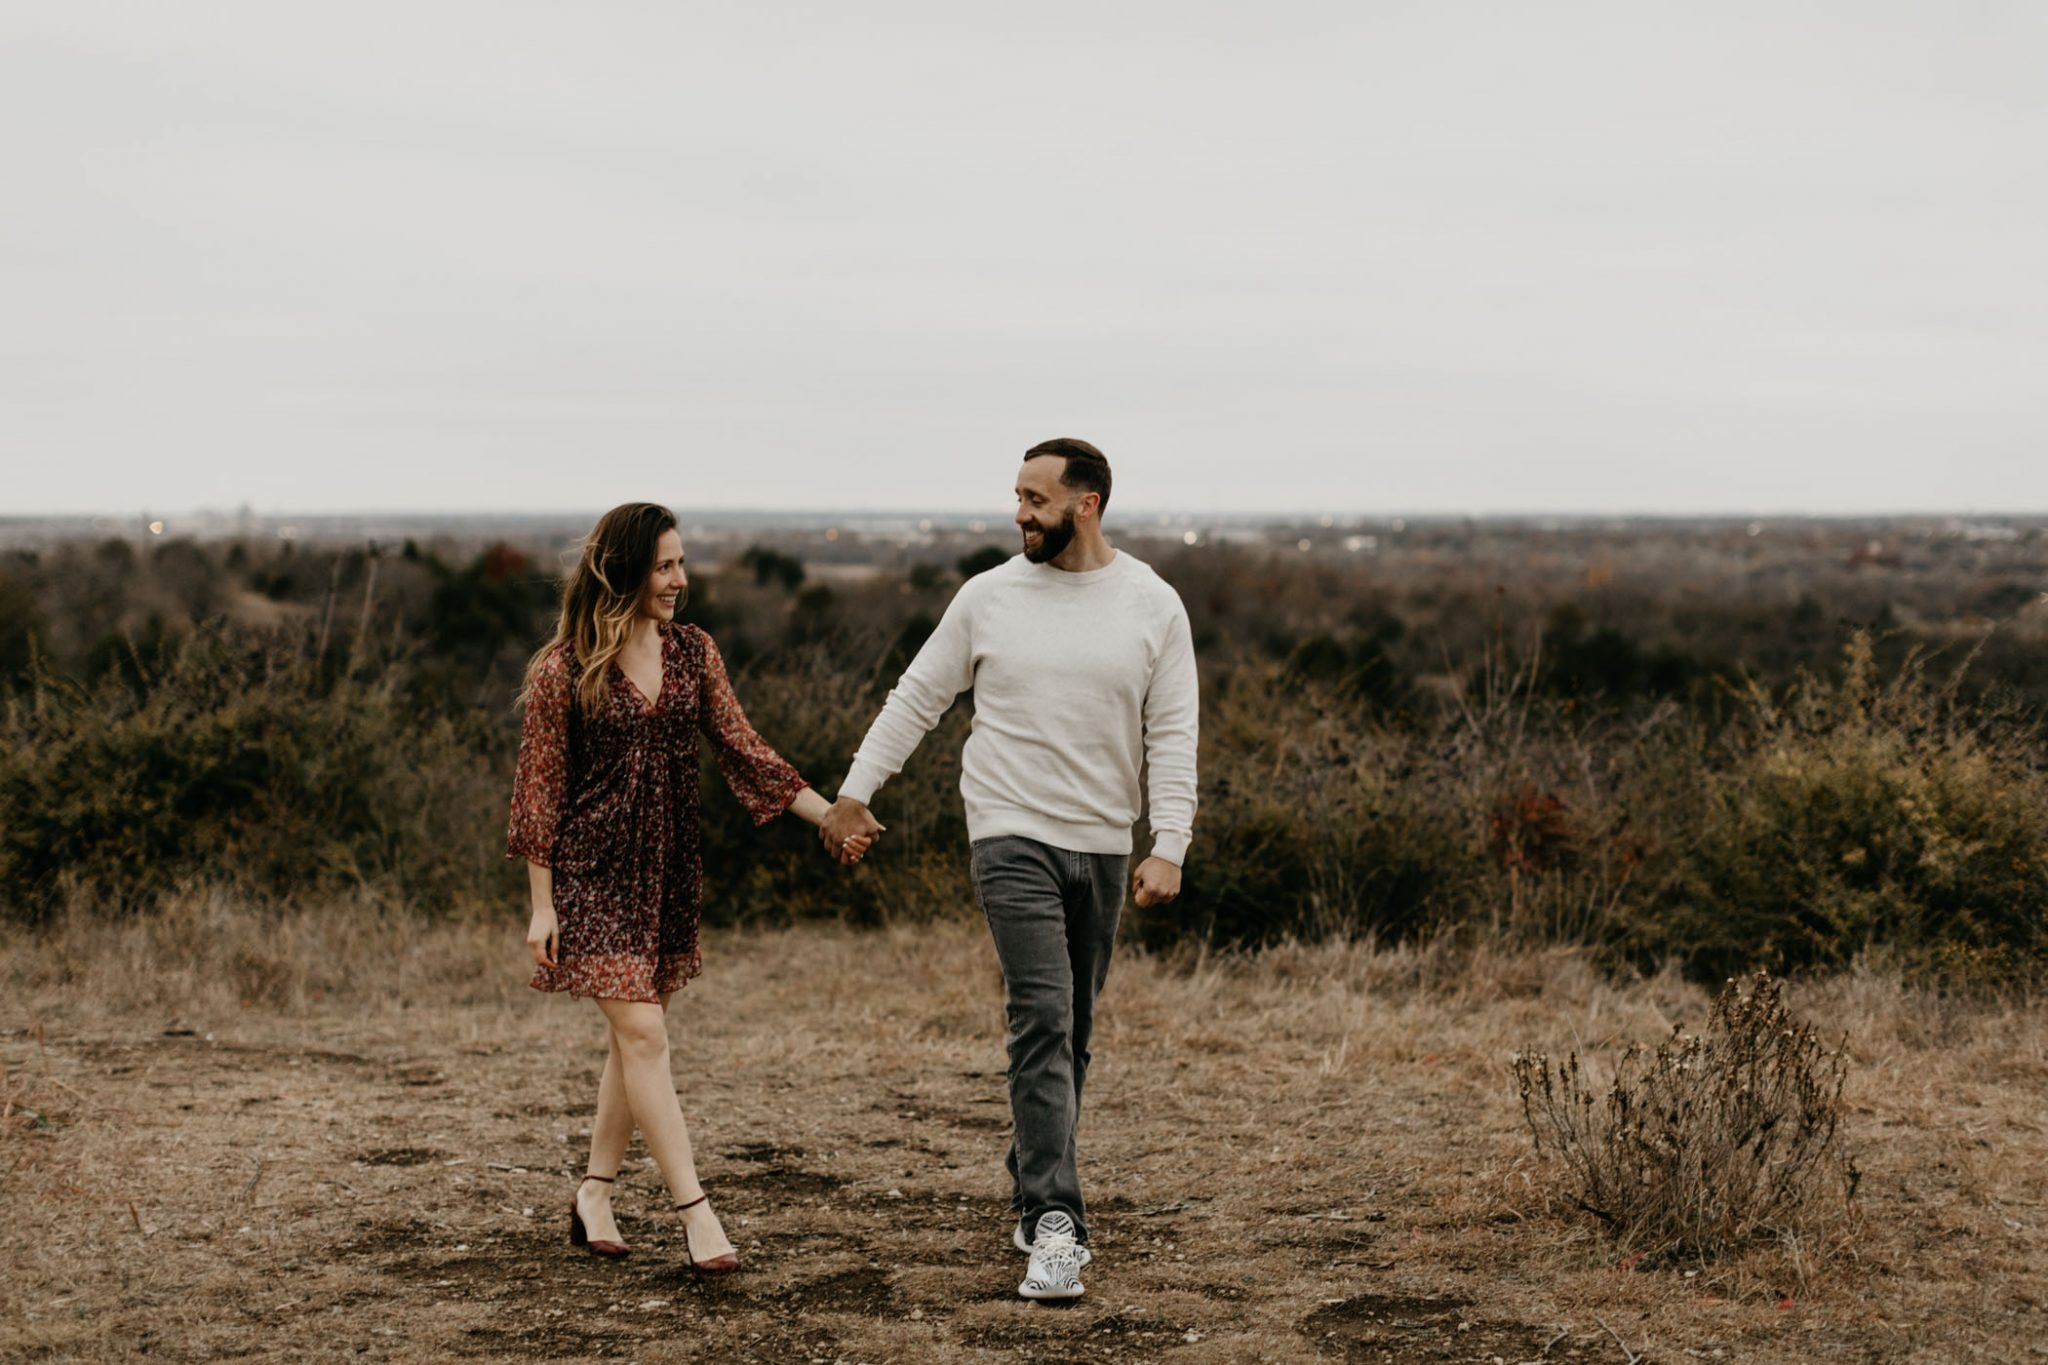 Romantic Fort Worth engagement photographer takes photo of couple walking